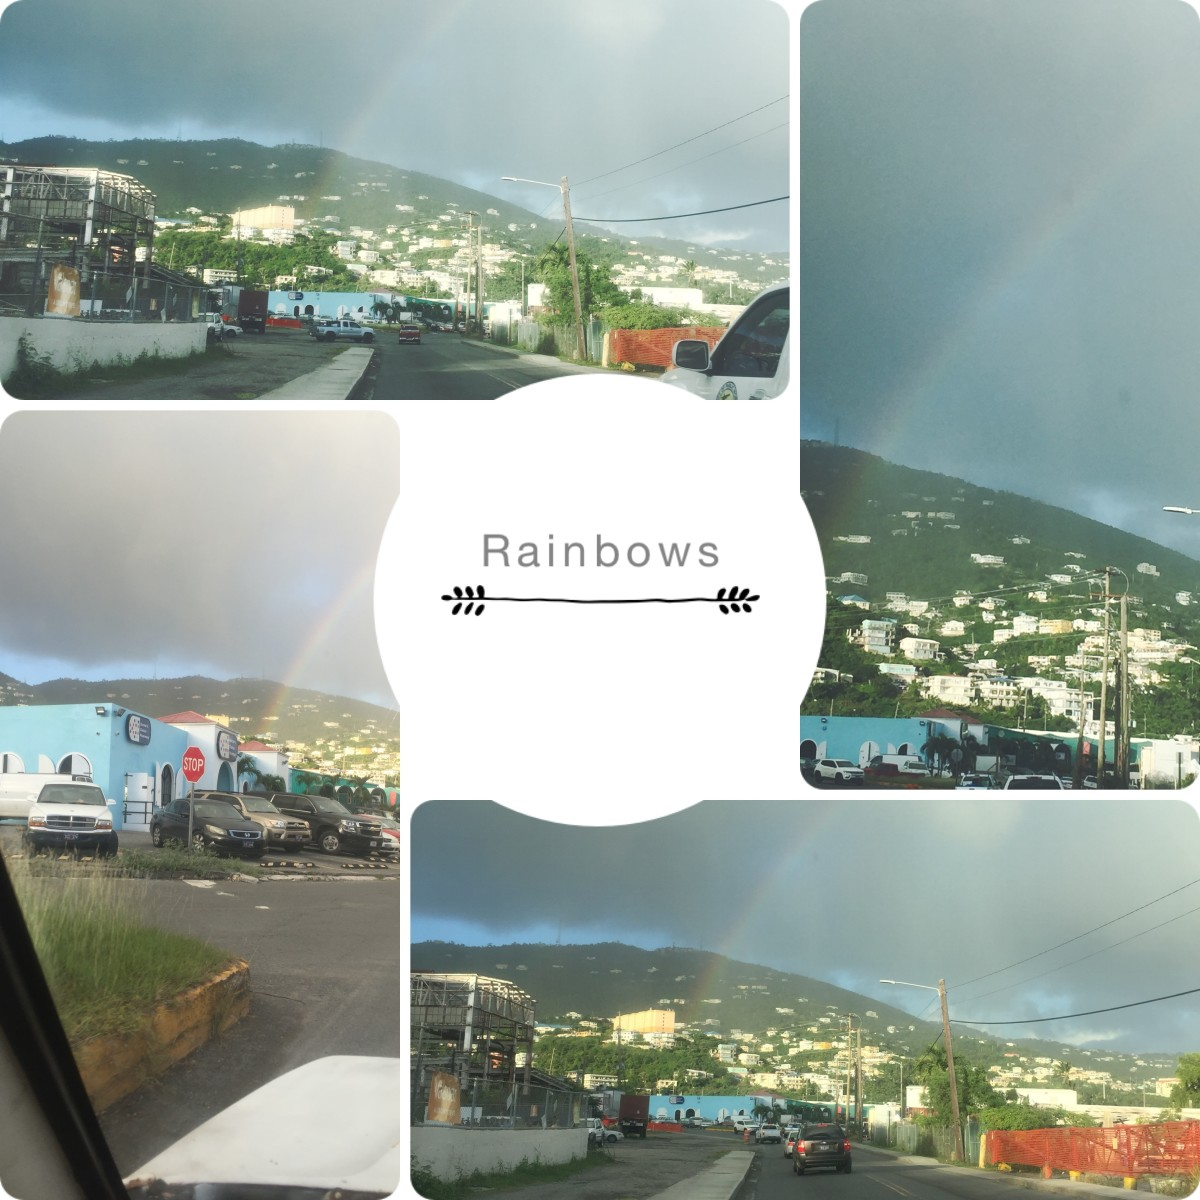 December 7, 2018 @ 4:56pm. Captured rainbow driving on crown bay road going on East 30 on waterfront. See video.